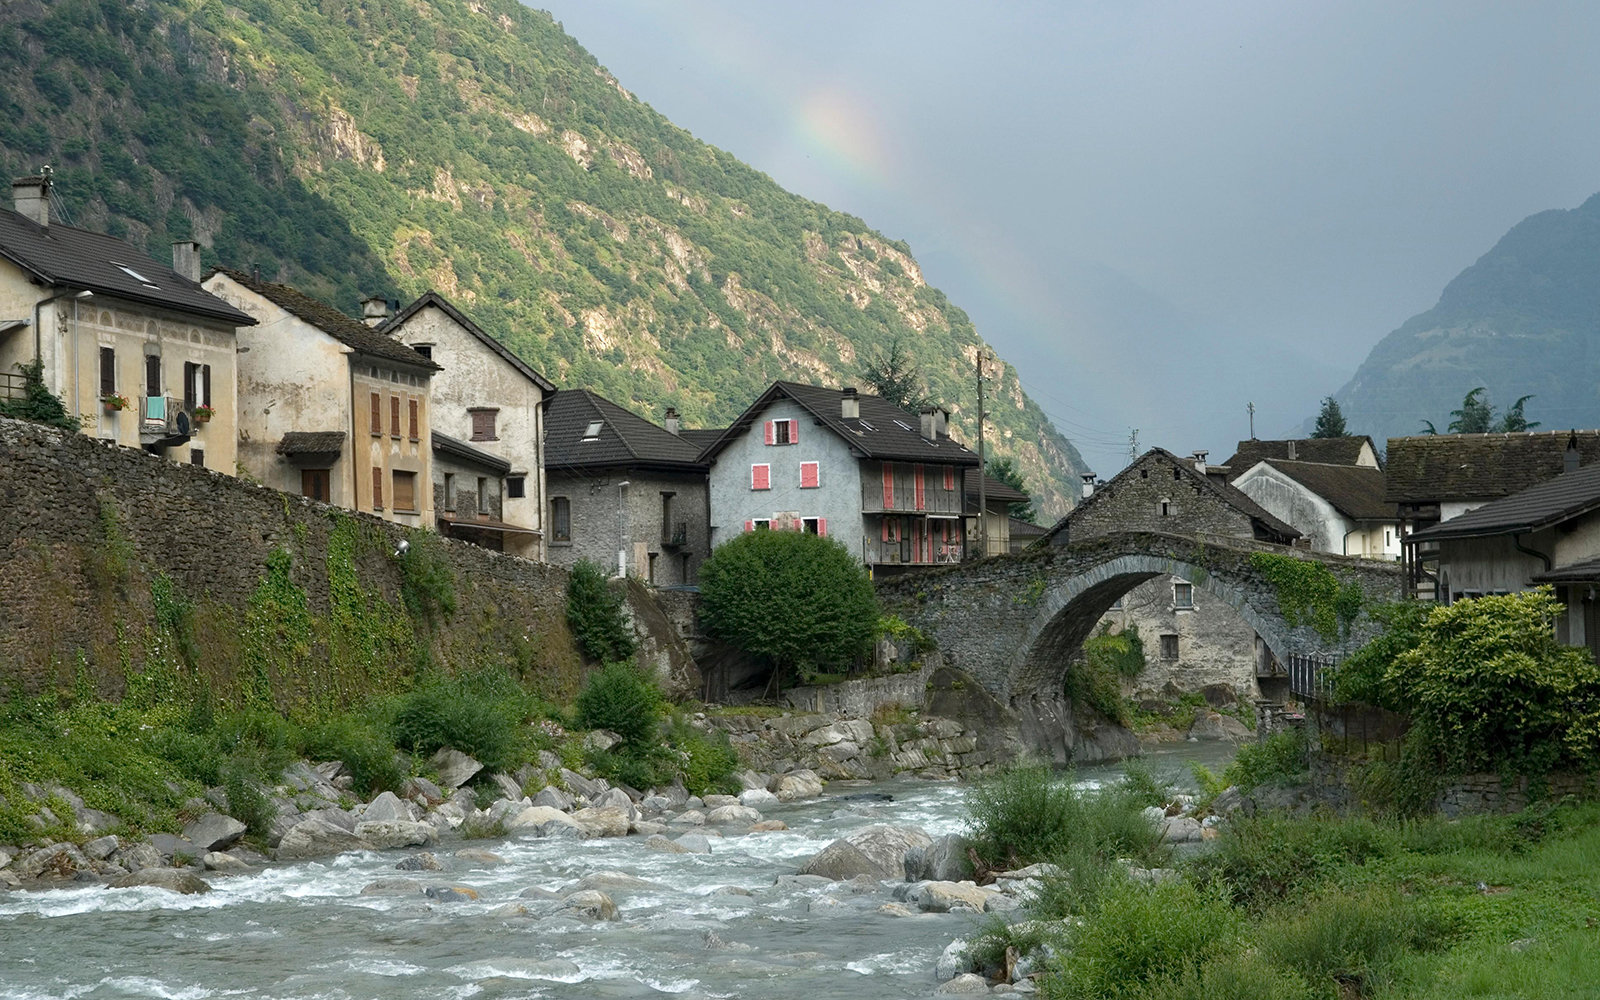 mountain town on the river in Giornico, Switzerland